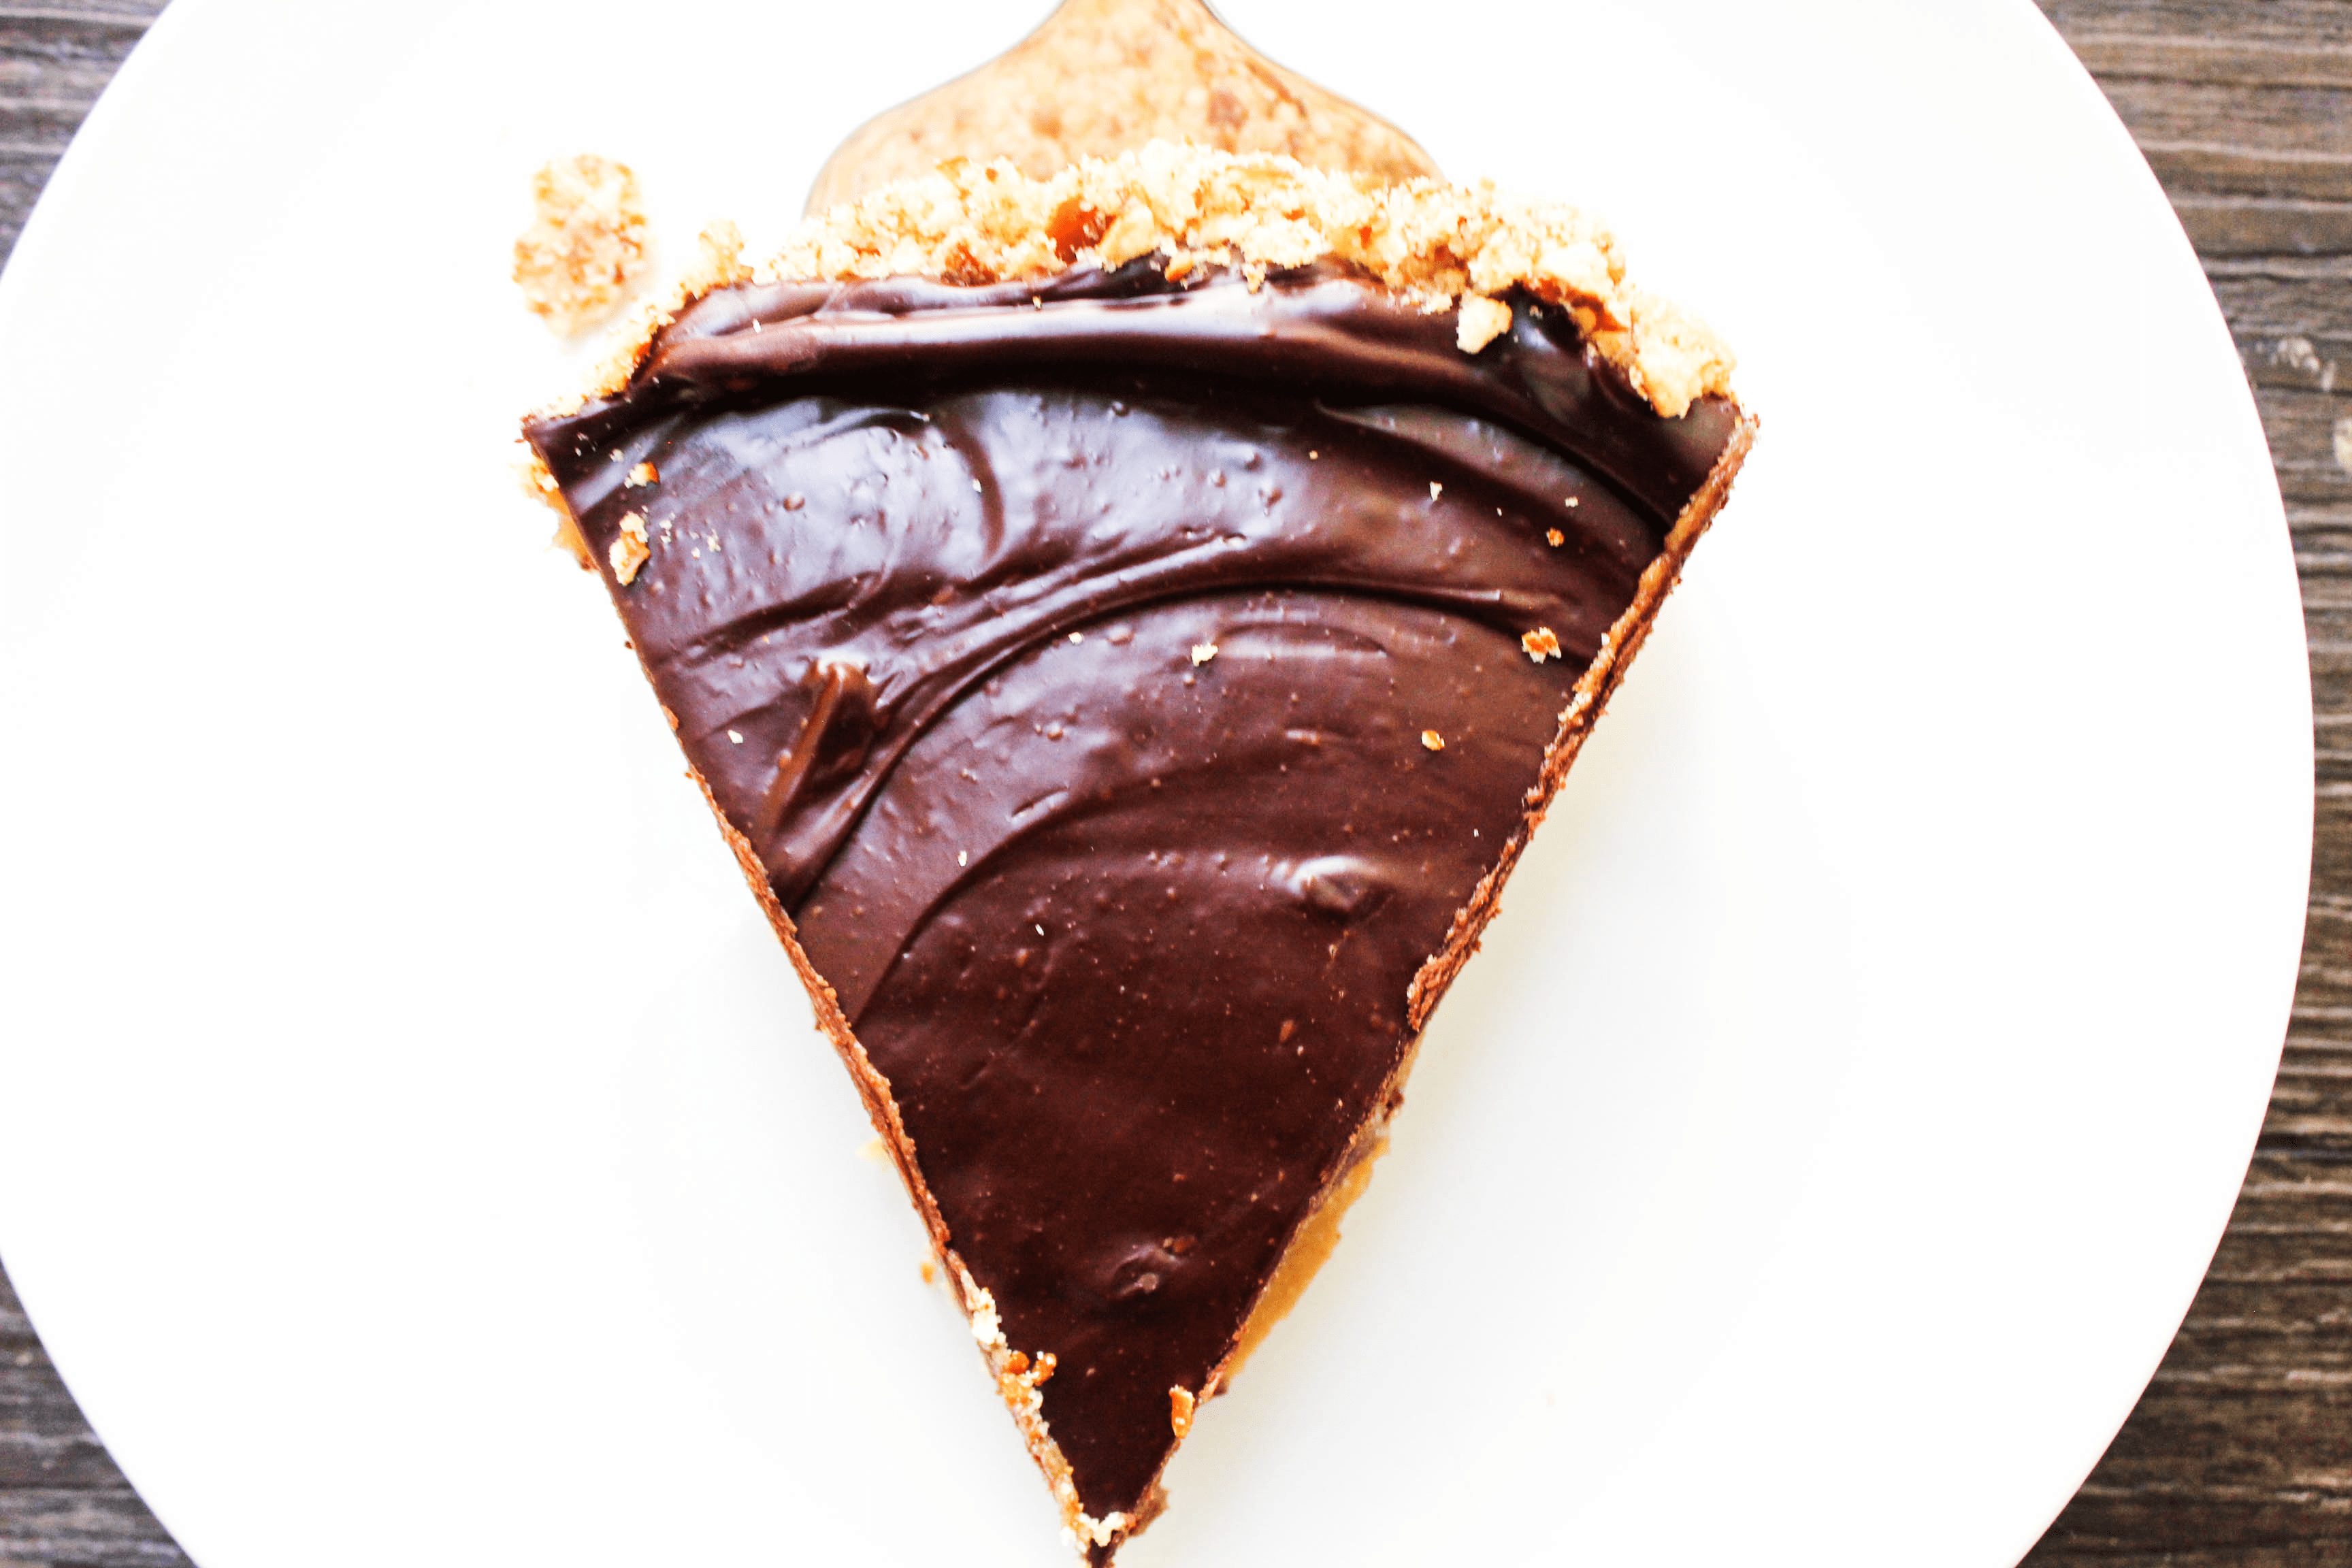 This mouthwatering Chocolate Peanut Butter Caramel Tart will have you licking your plate clean, or maybe even the entire pan for that matter.